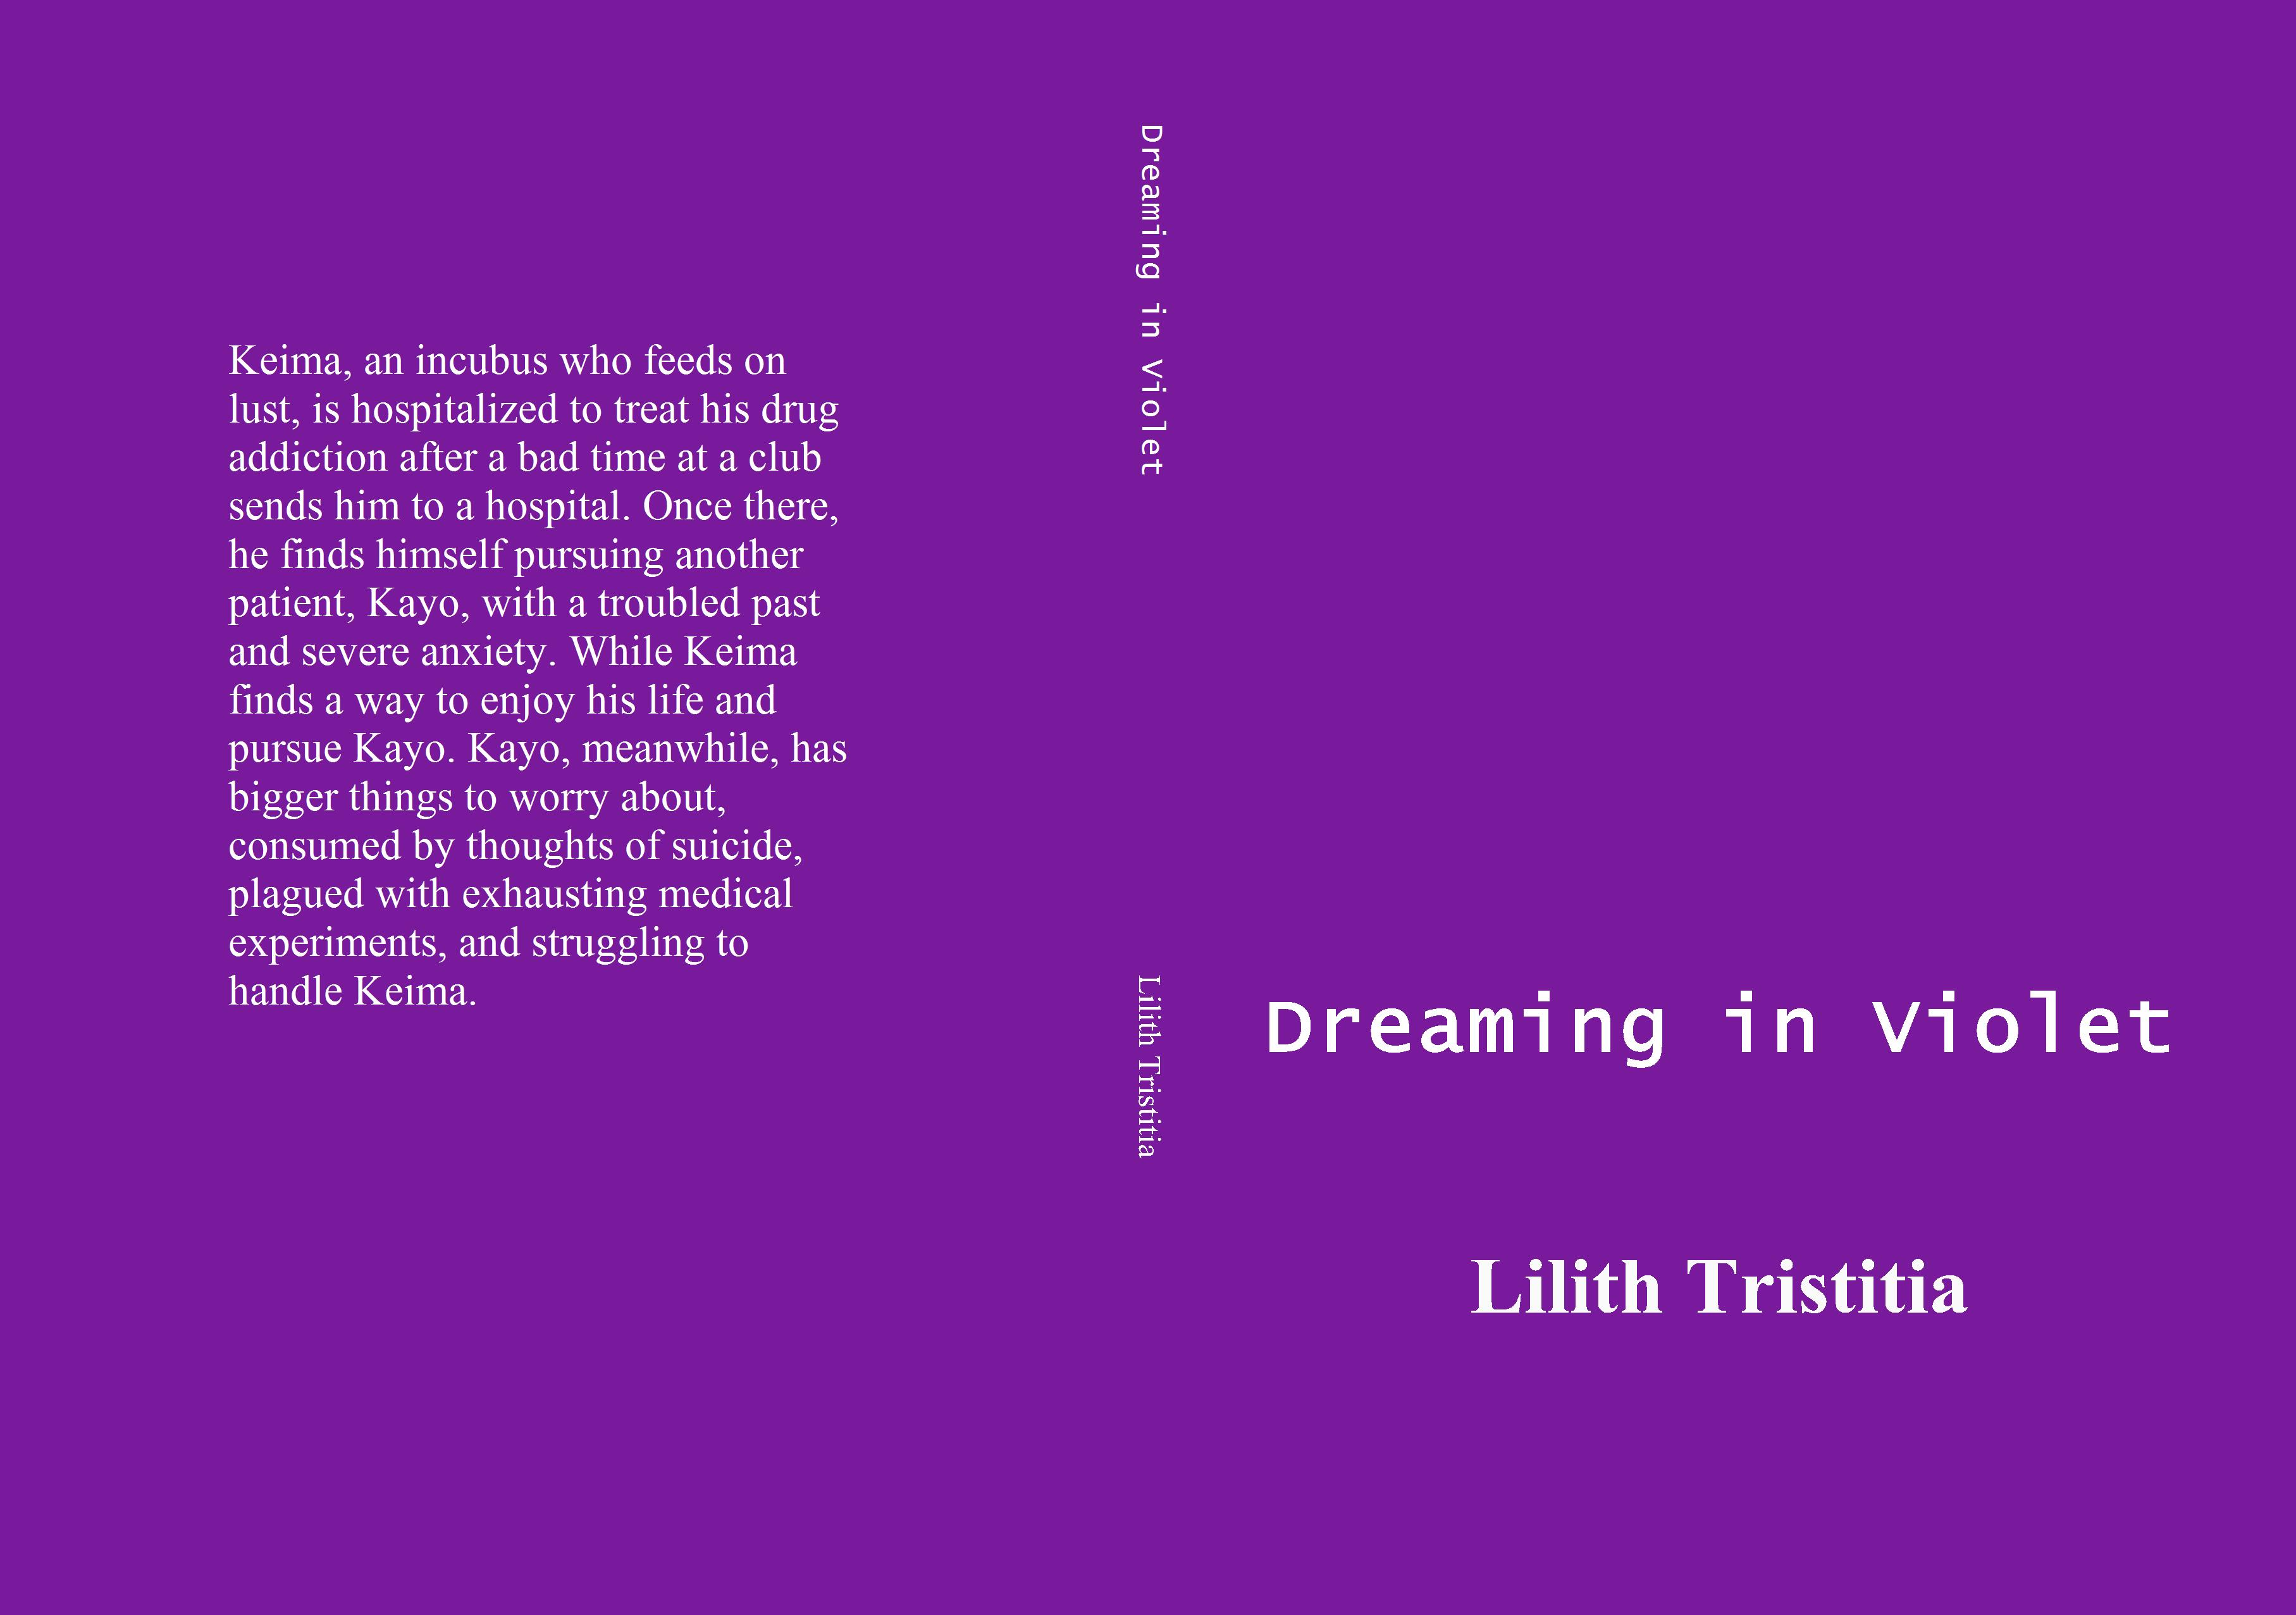 Dreaming in Violet cover image